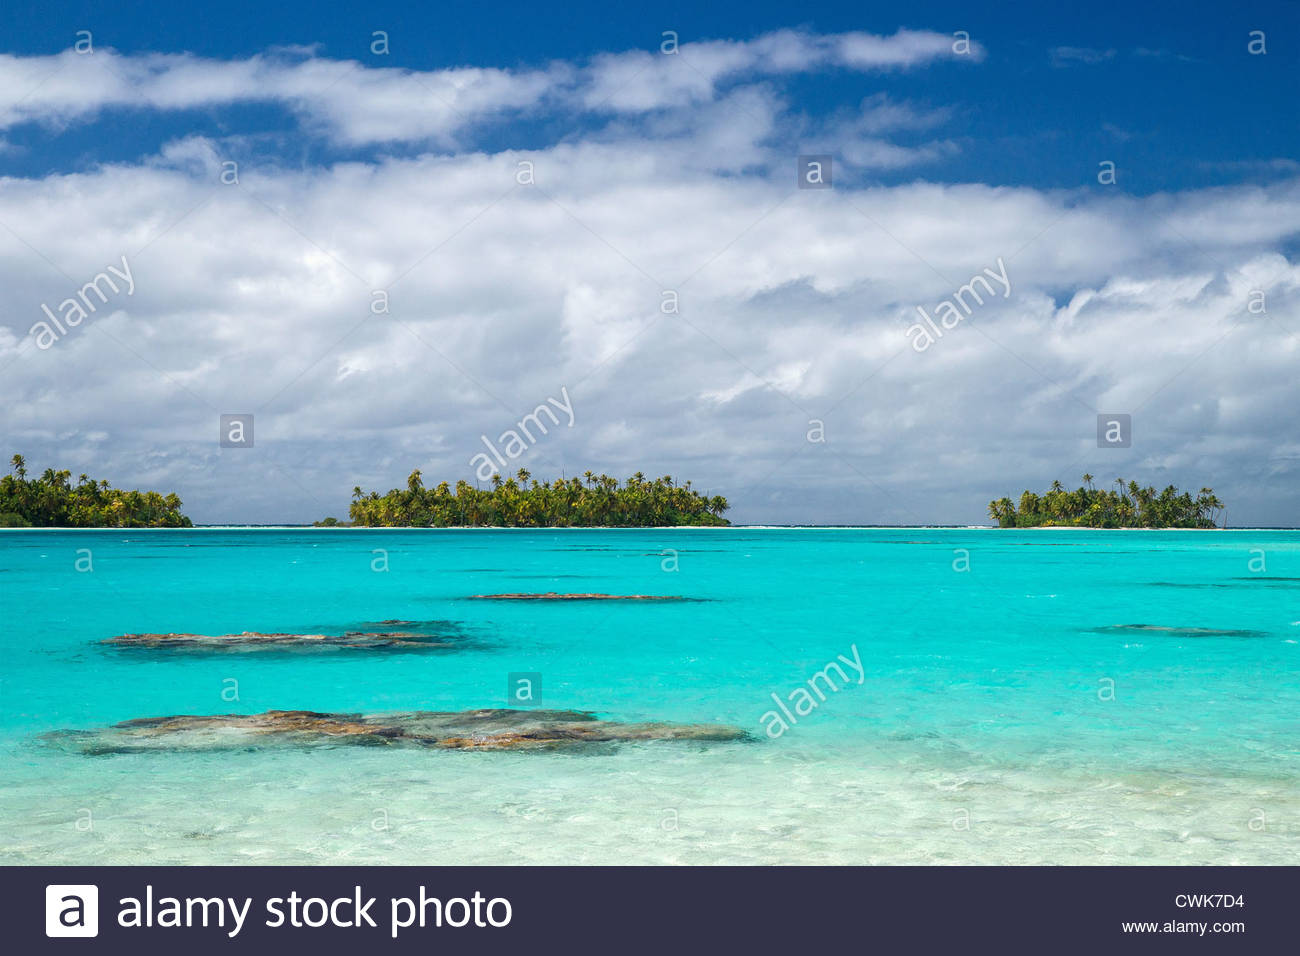 Rangiroa (Tuamotu archipelago - French Polynesia) : the blue lagoon - Stock Image